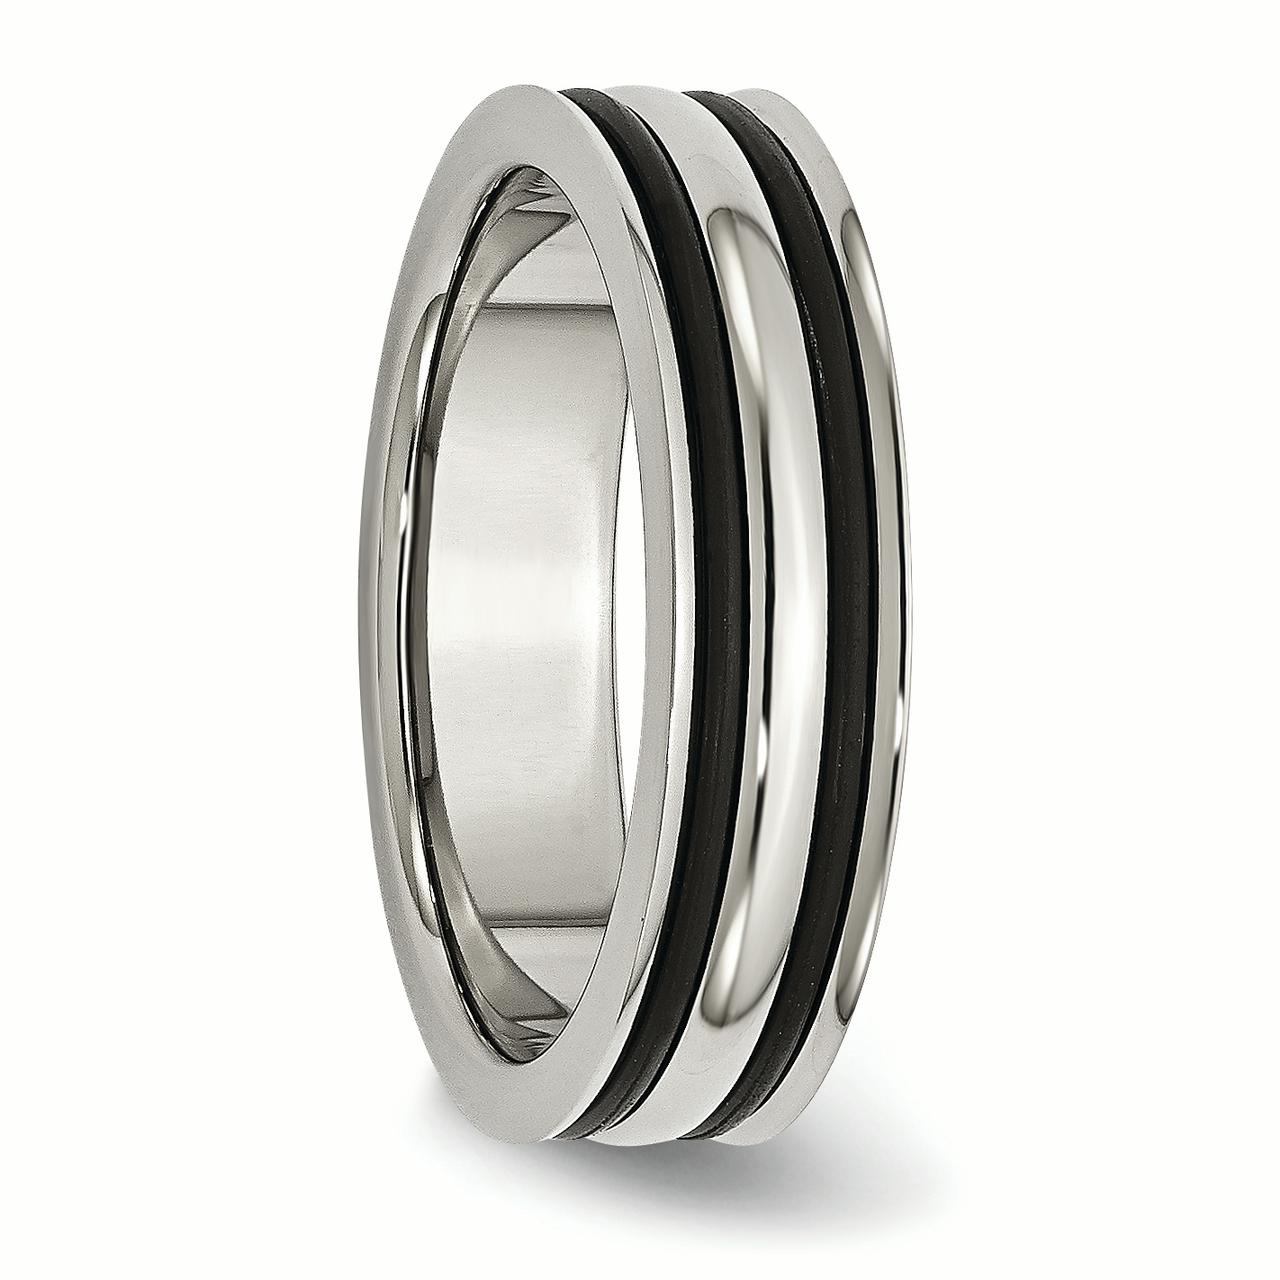 Stainless Steel 6mm Grooved and Black Rubber Band Ring 11.5 Size - image 4 de 6